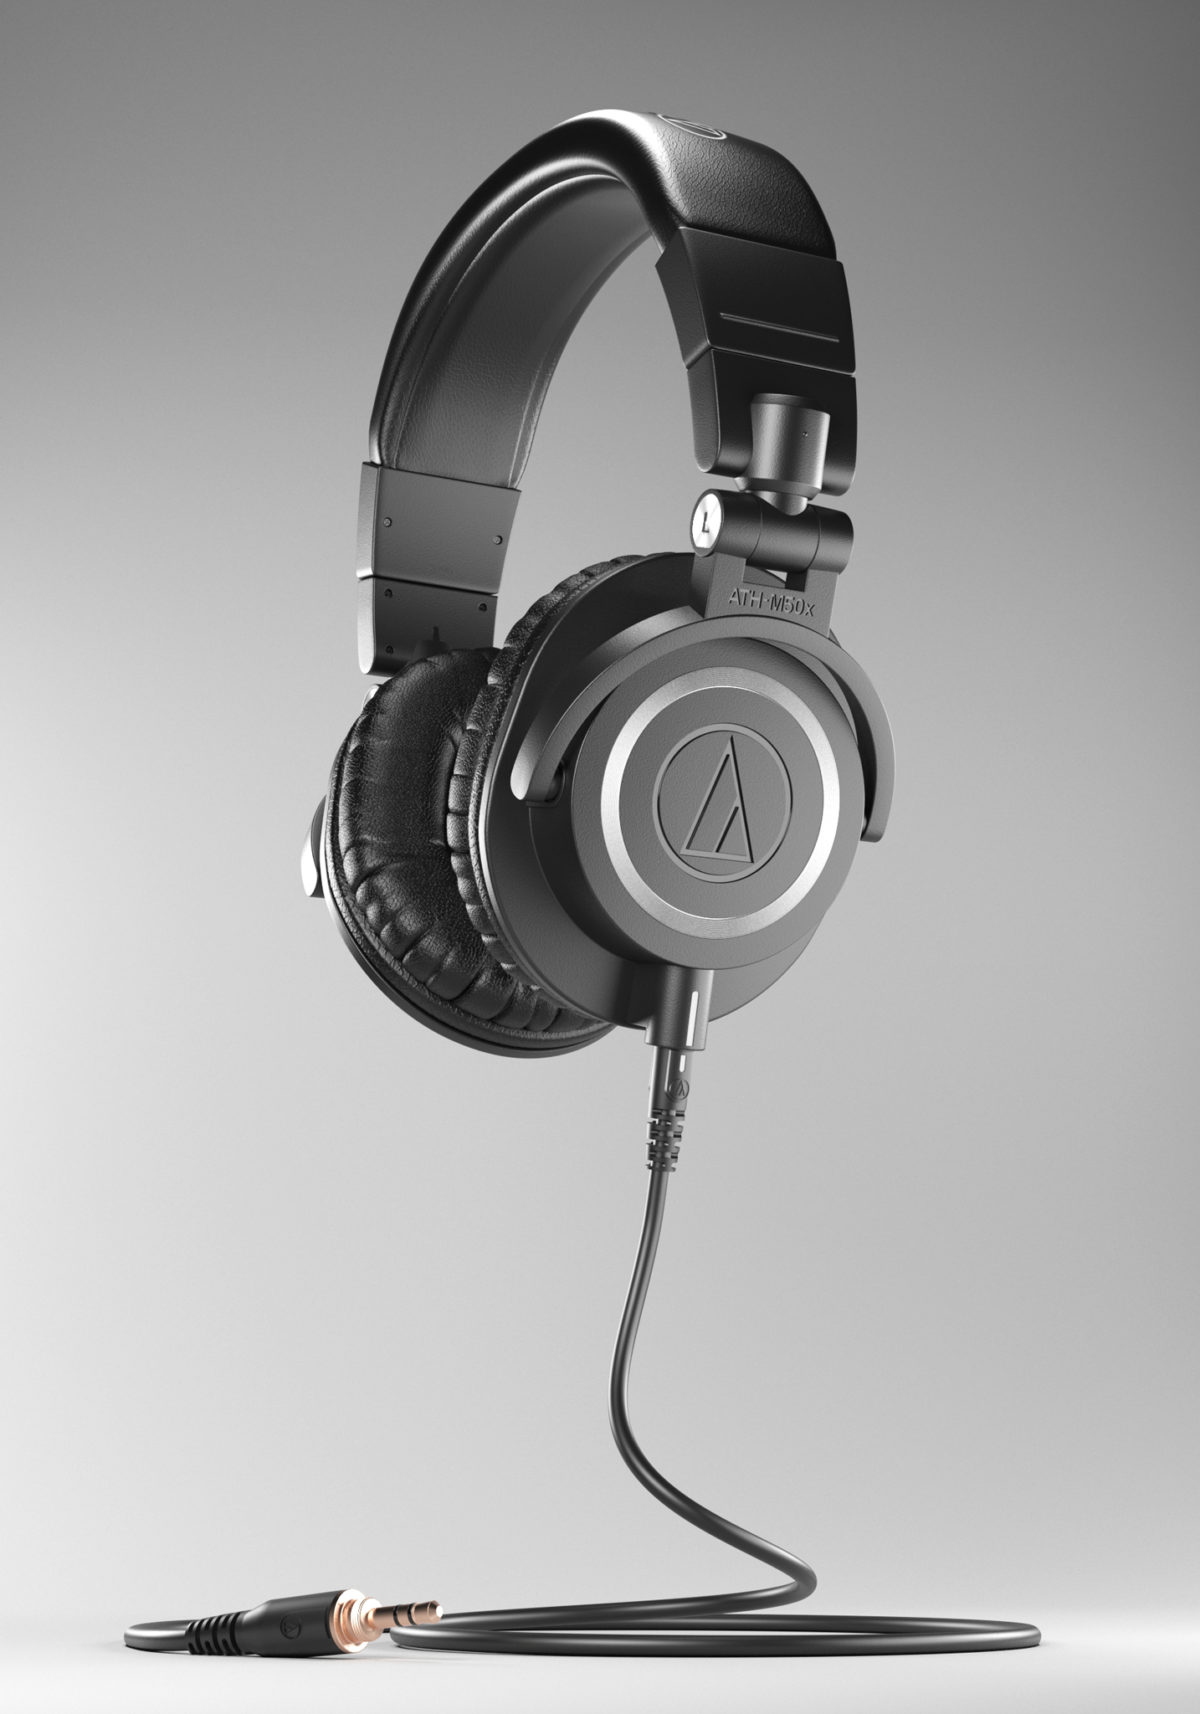 Photoreal Audio-Technica ATH-M50x 3D Model